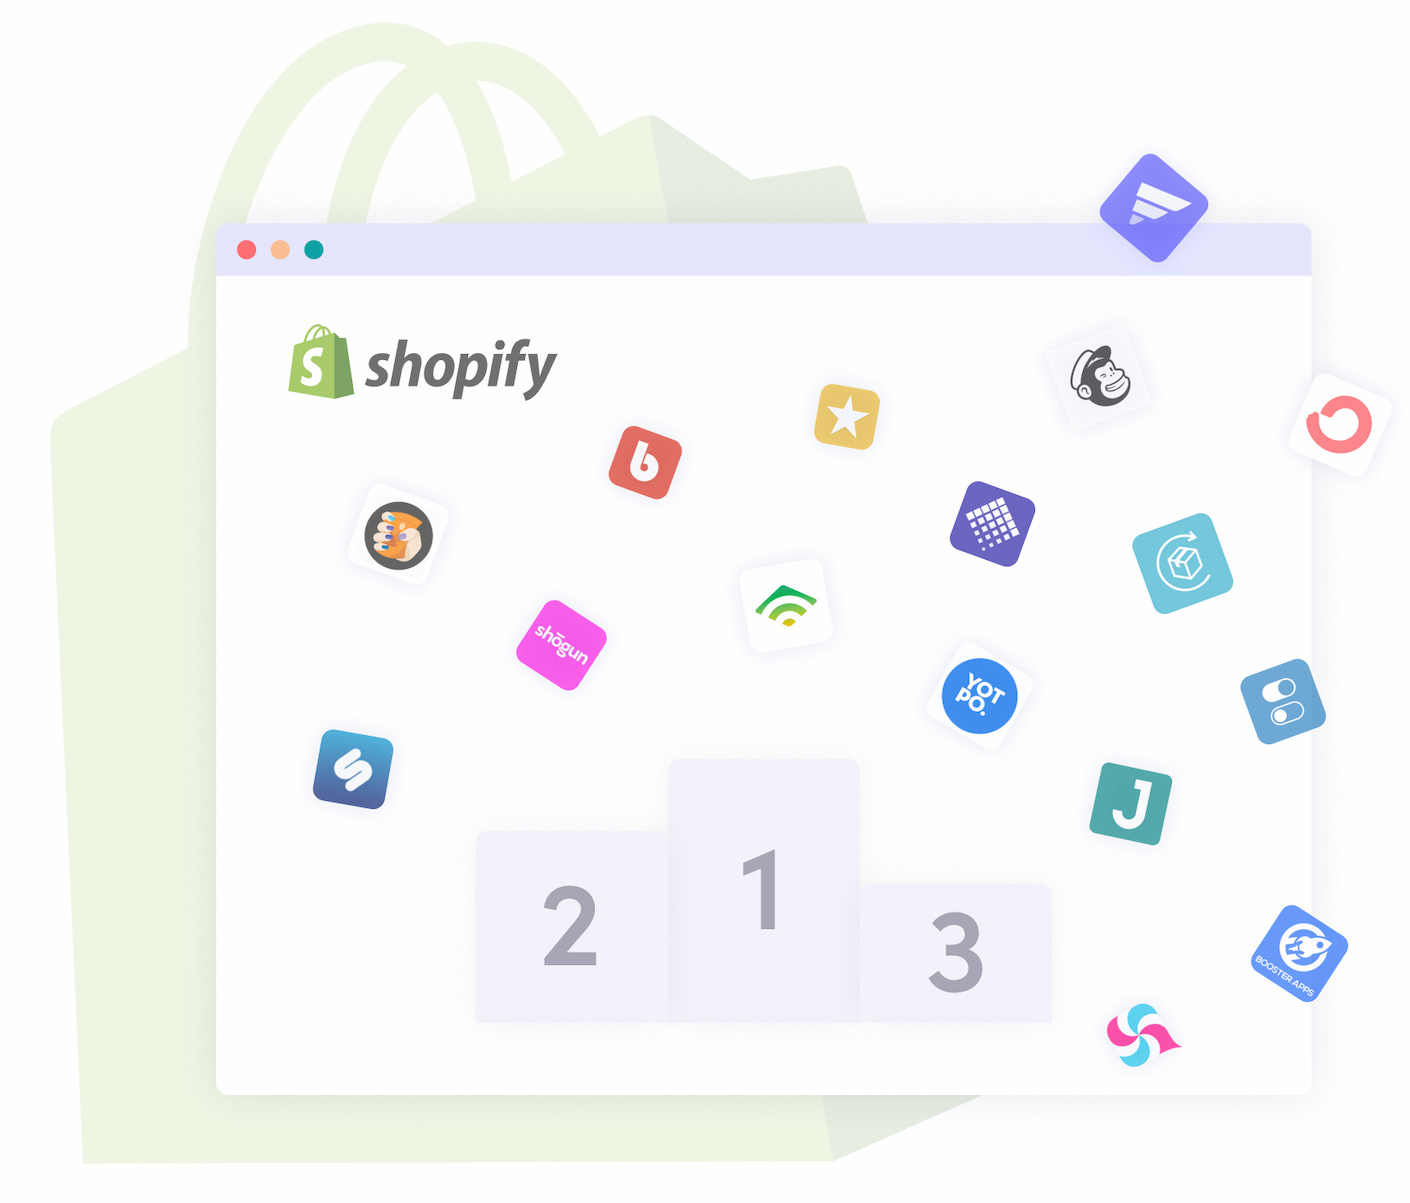 Shopify tools & apps